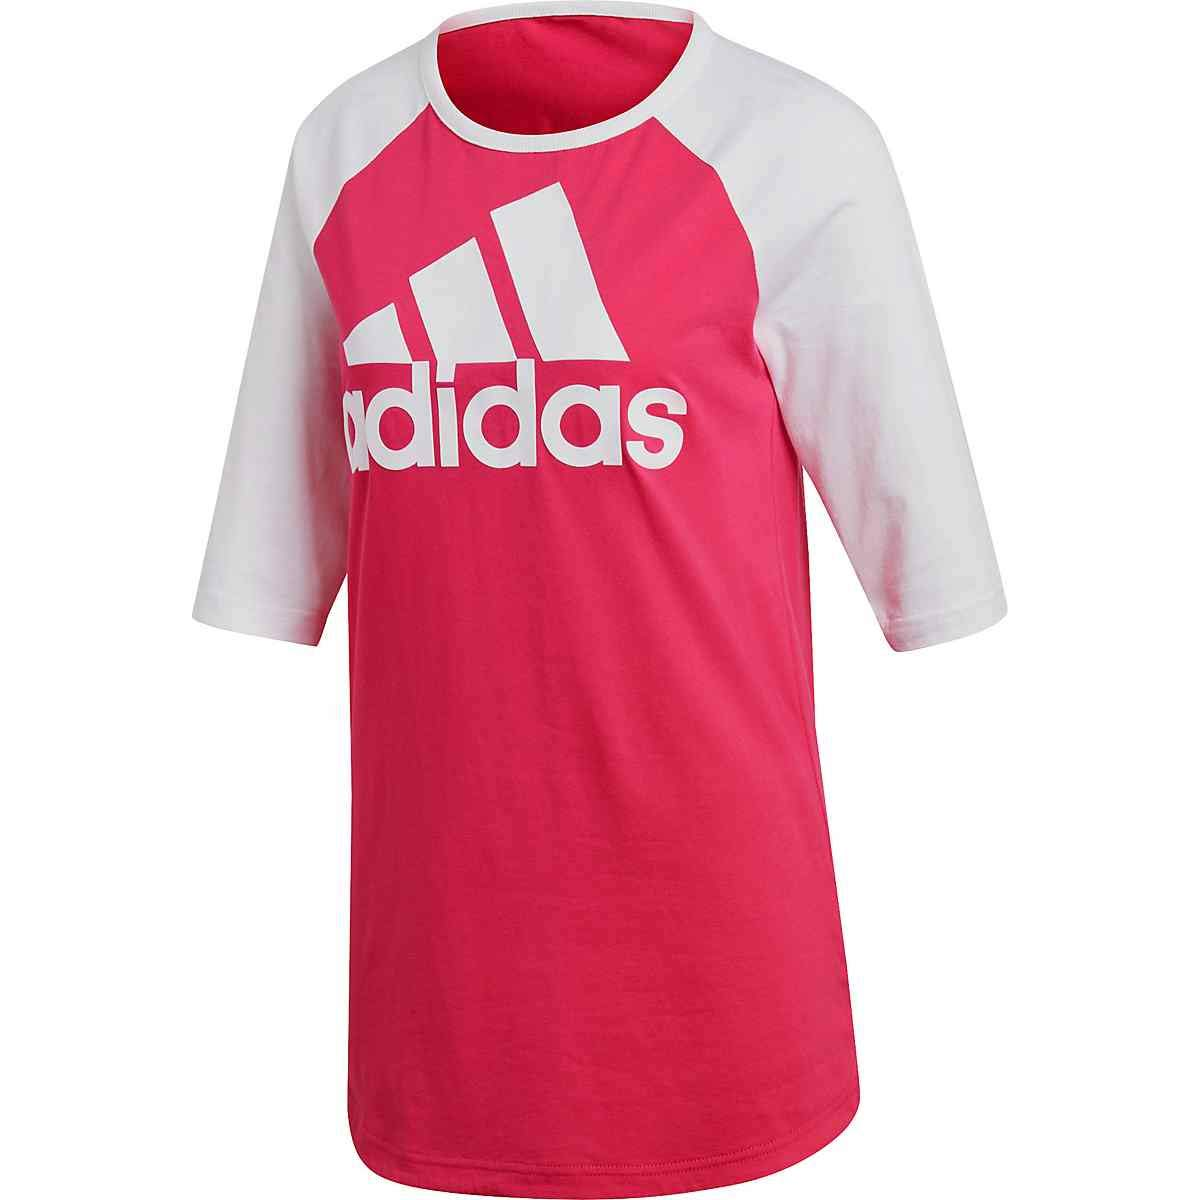 1ed9c04187 Details about Adidas NEW Pink White Womens US Size XS Athletic Baseball Tee  T-Shirt $35 043